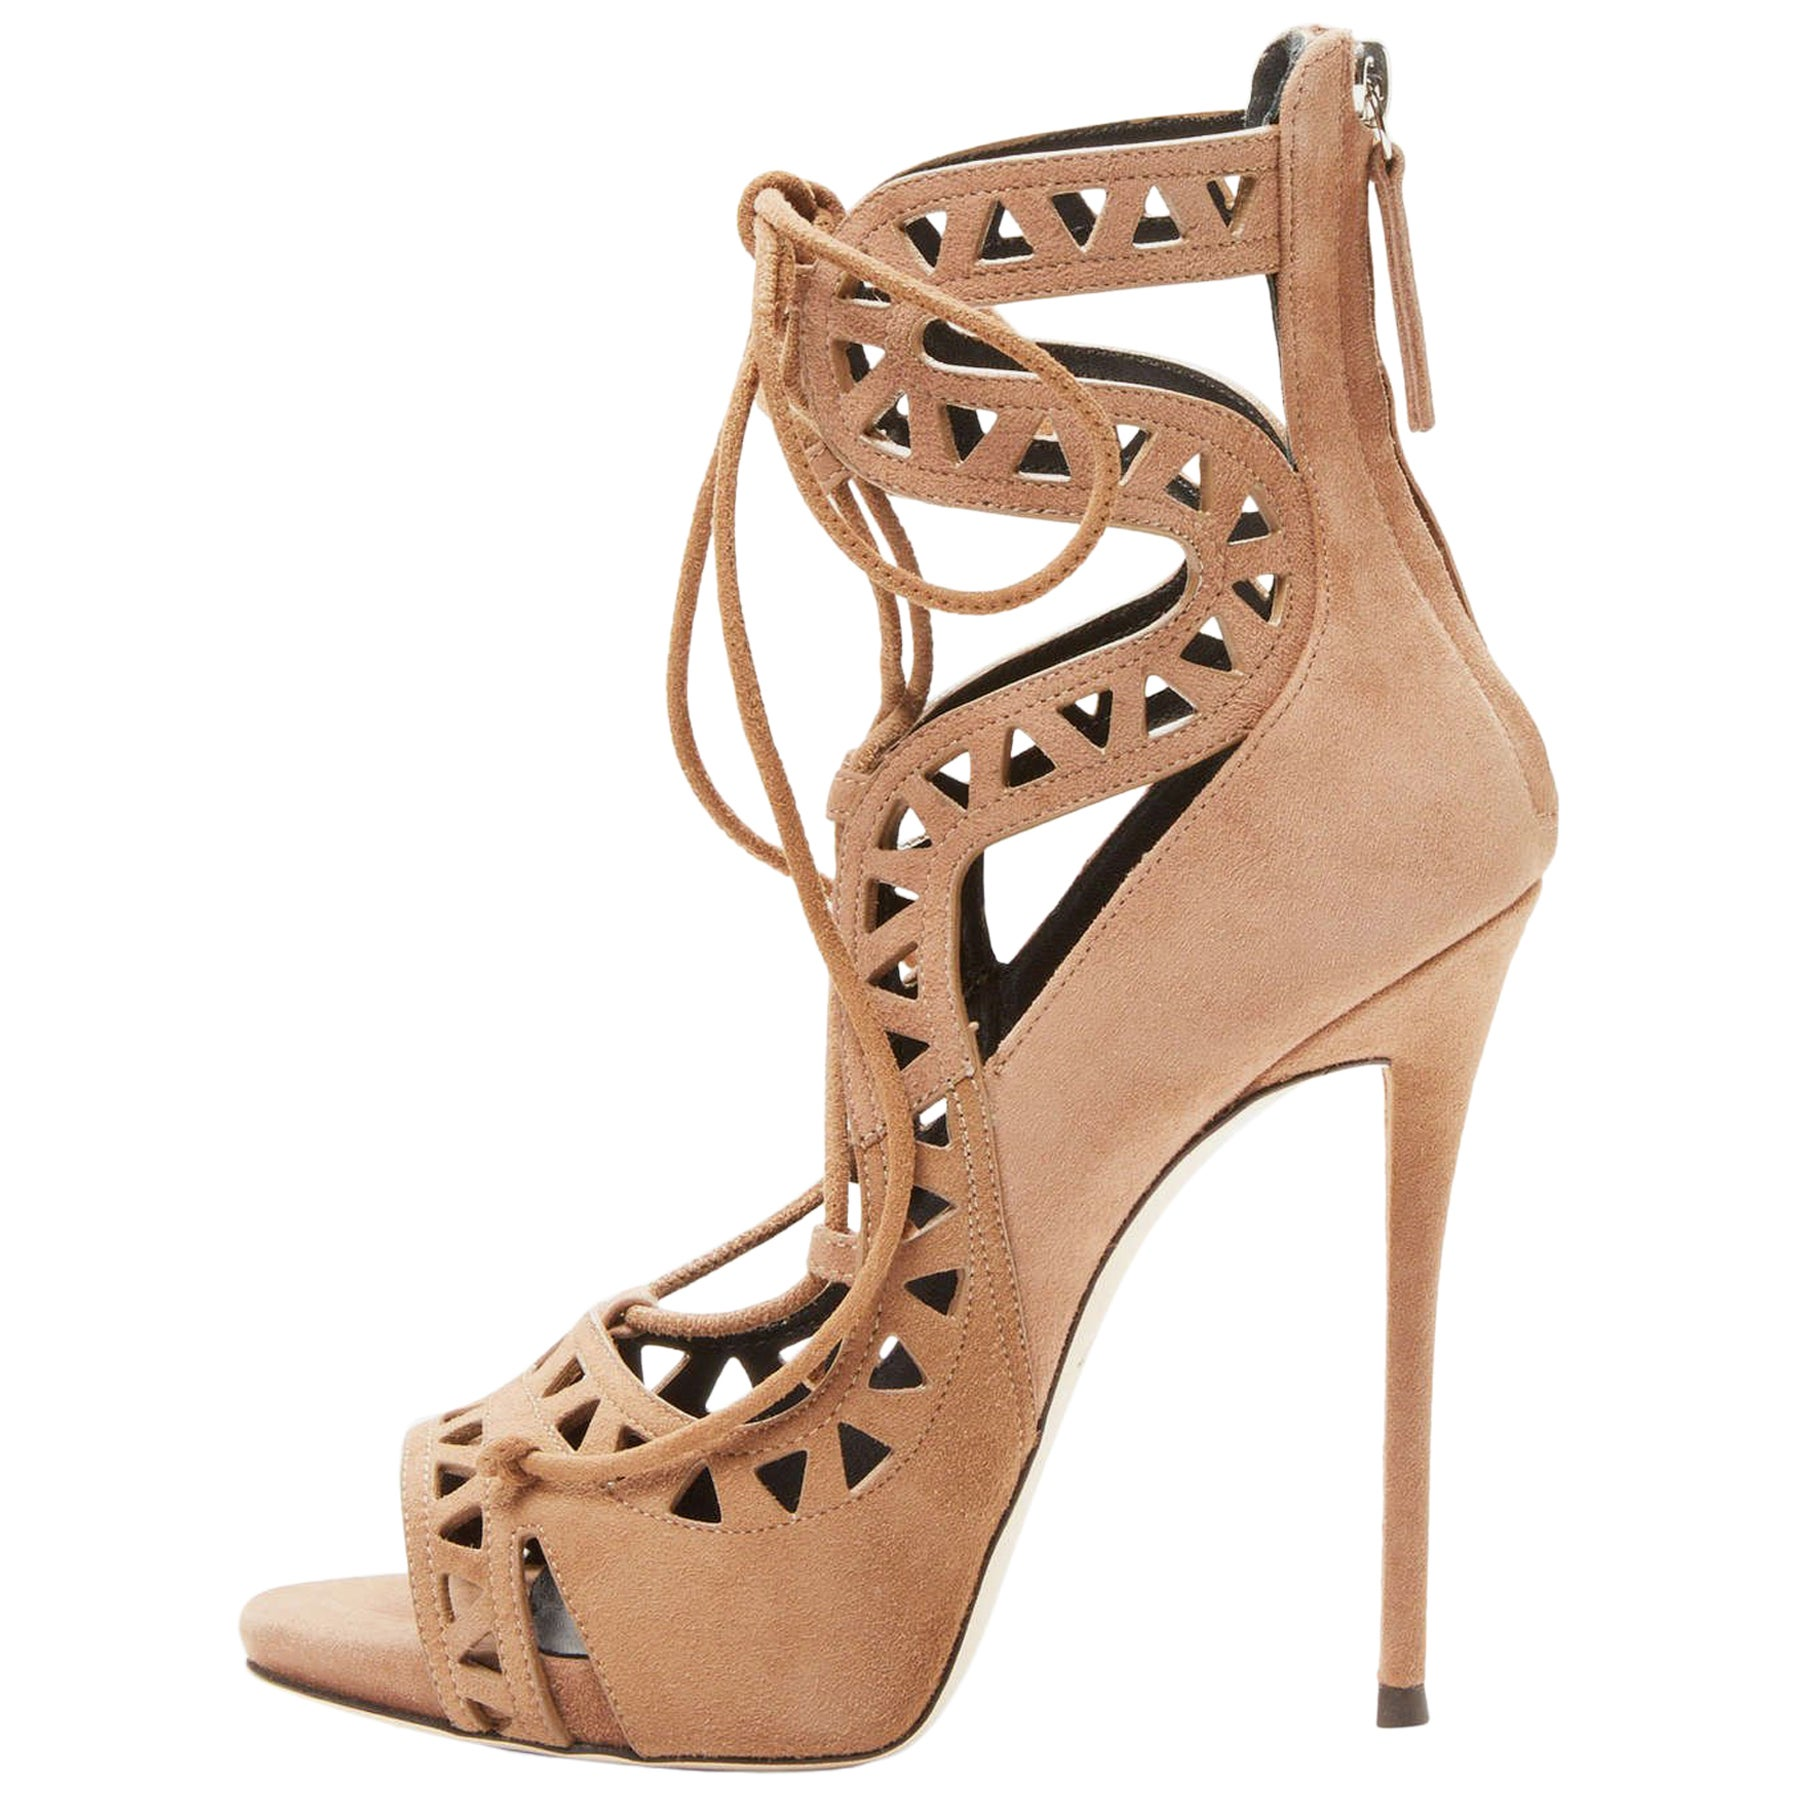 f94ca43ddca Giuseppe Zanotti NEW Nude Tan Suede Cut Out Lace Up Sandals Heels in Box